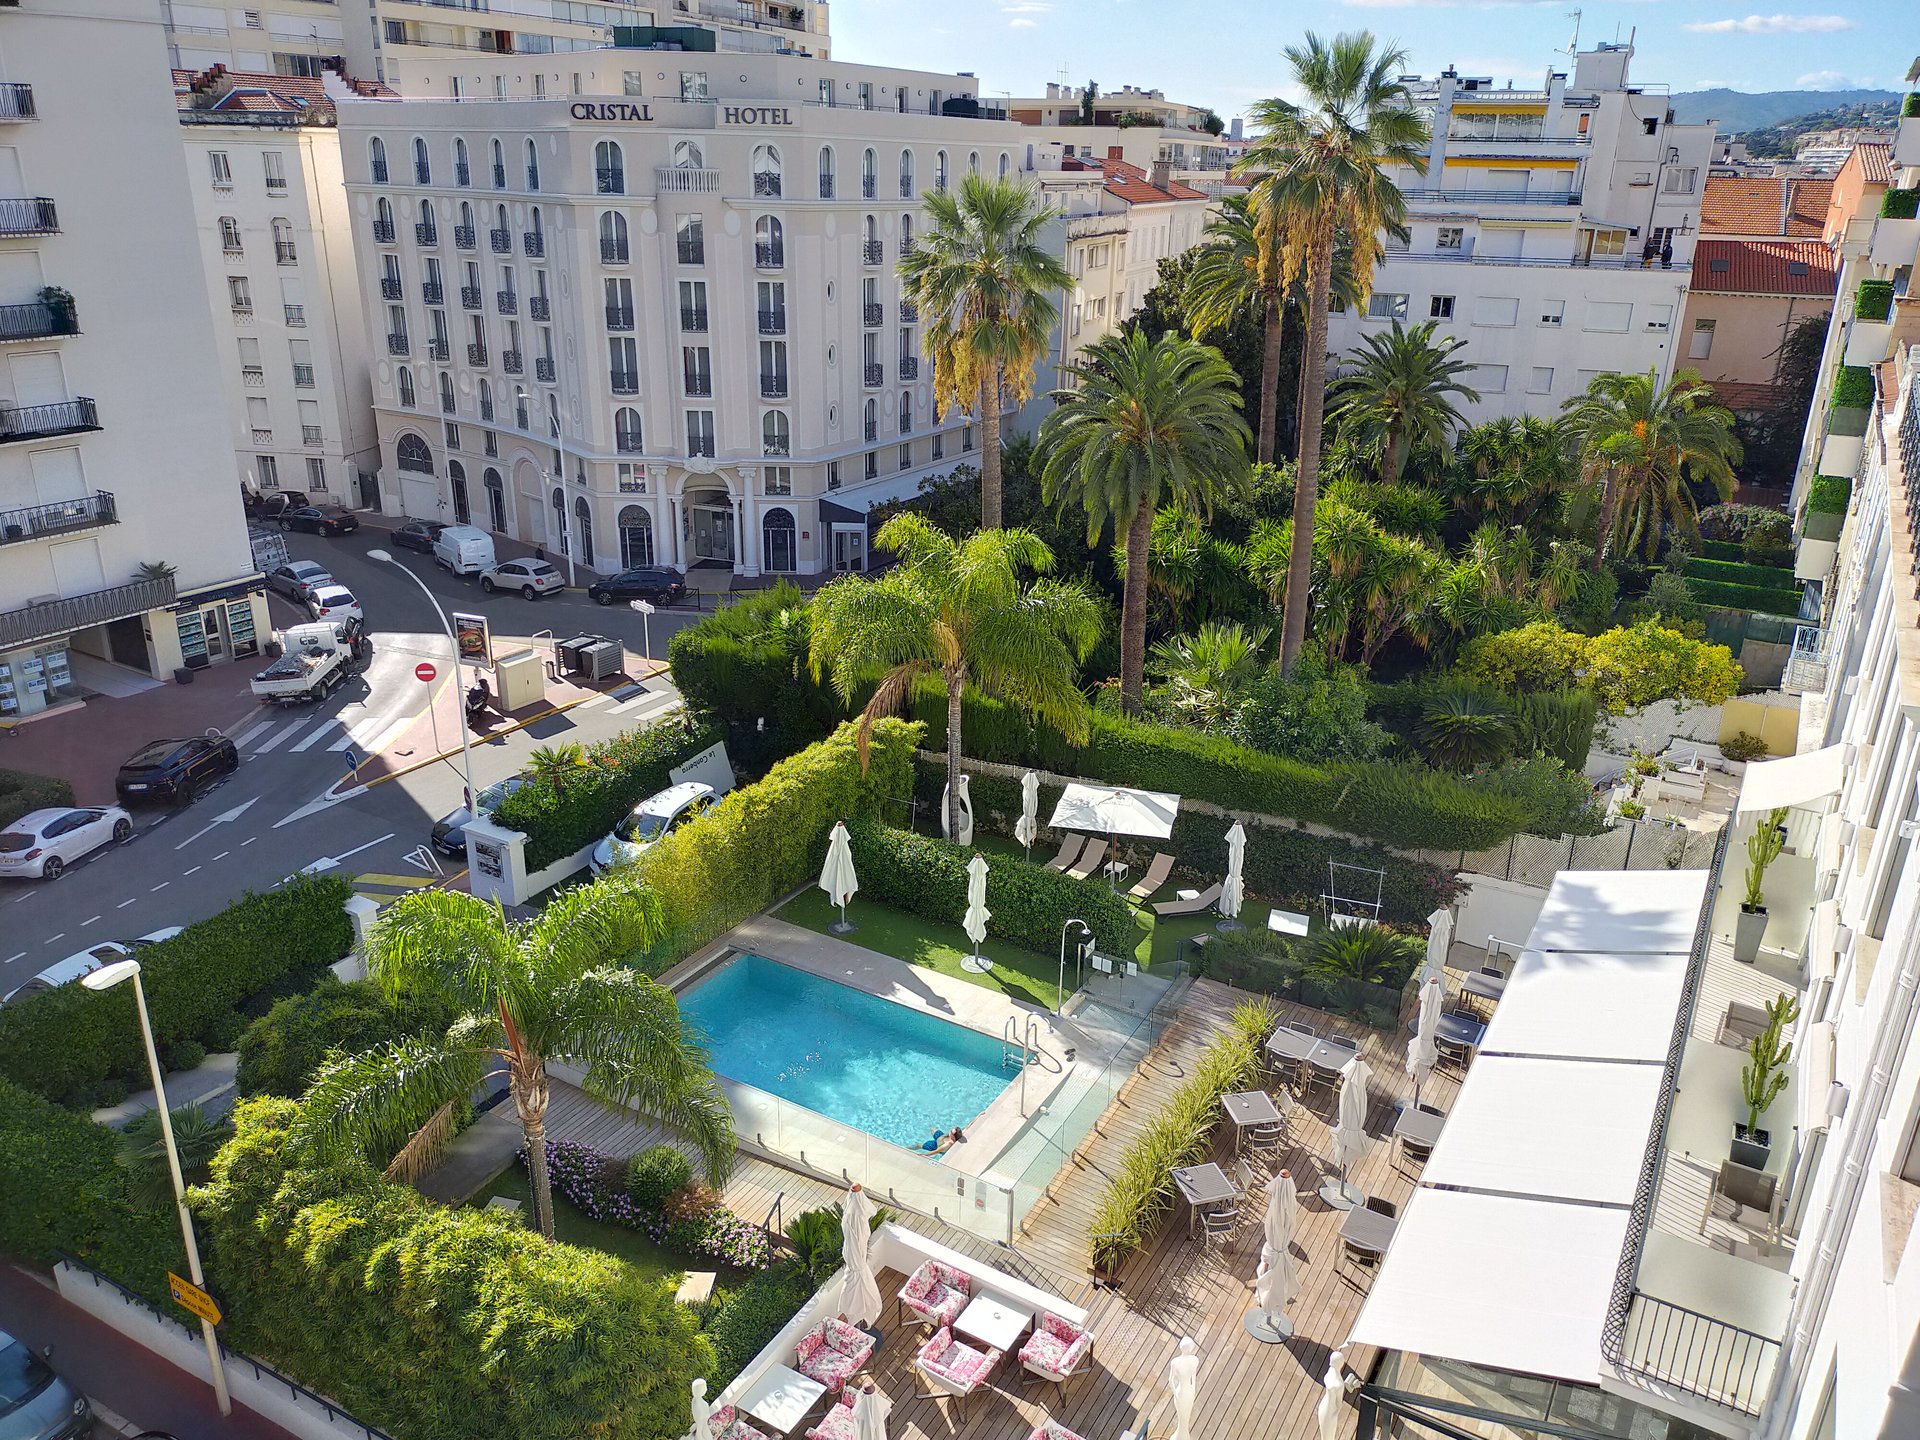 BANANE 3P 80M² + 25M² Ter. In the center of CANNES